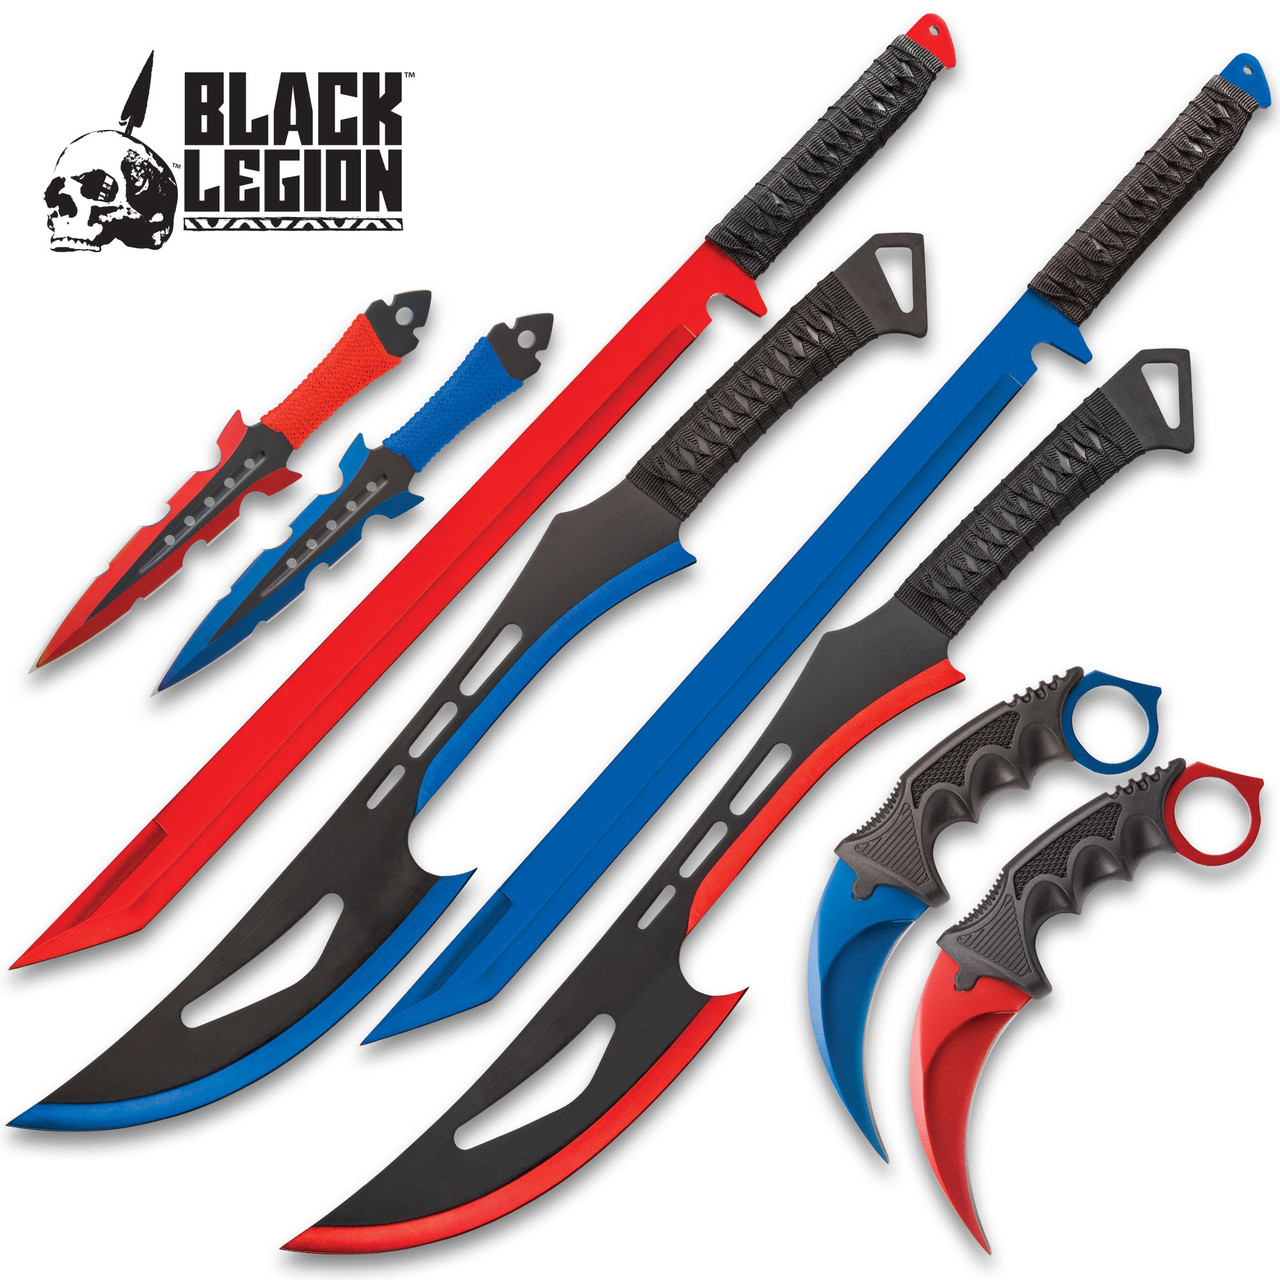 Fire And Ice Battle Set - Stainless Steel Blades w/ Sheaths